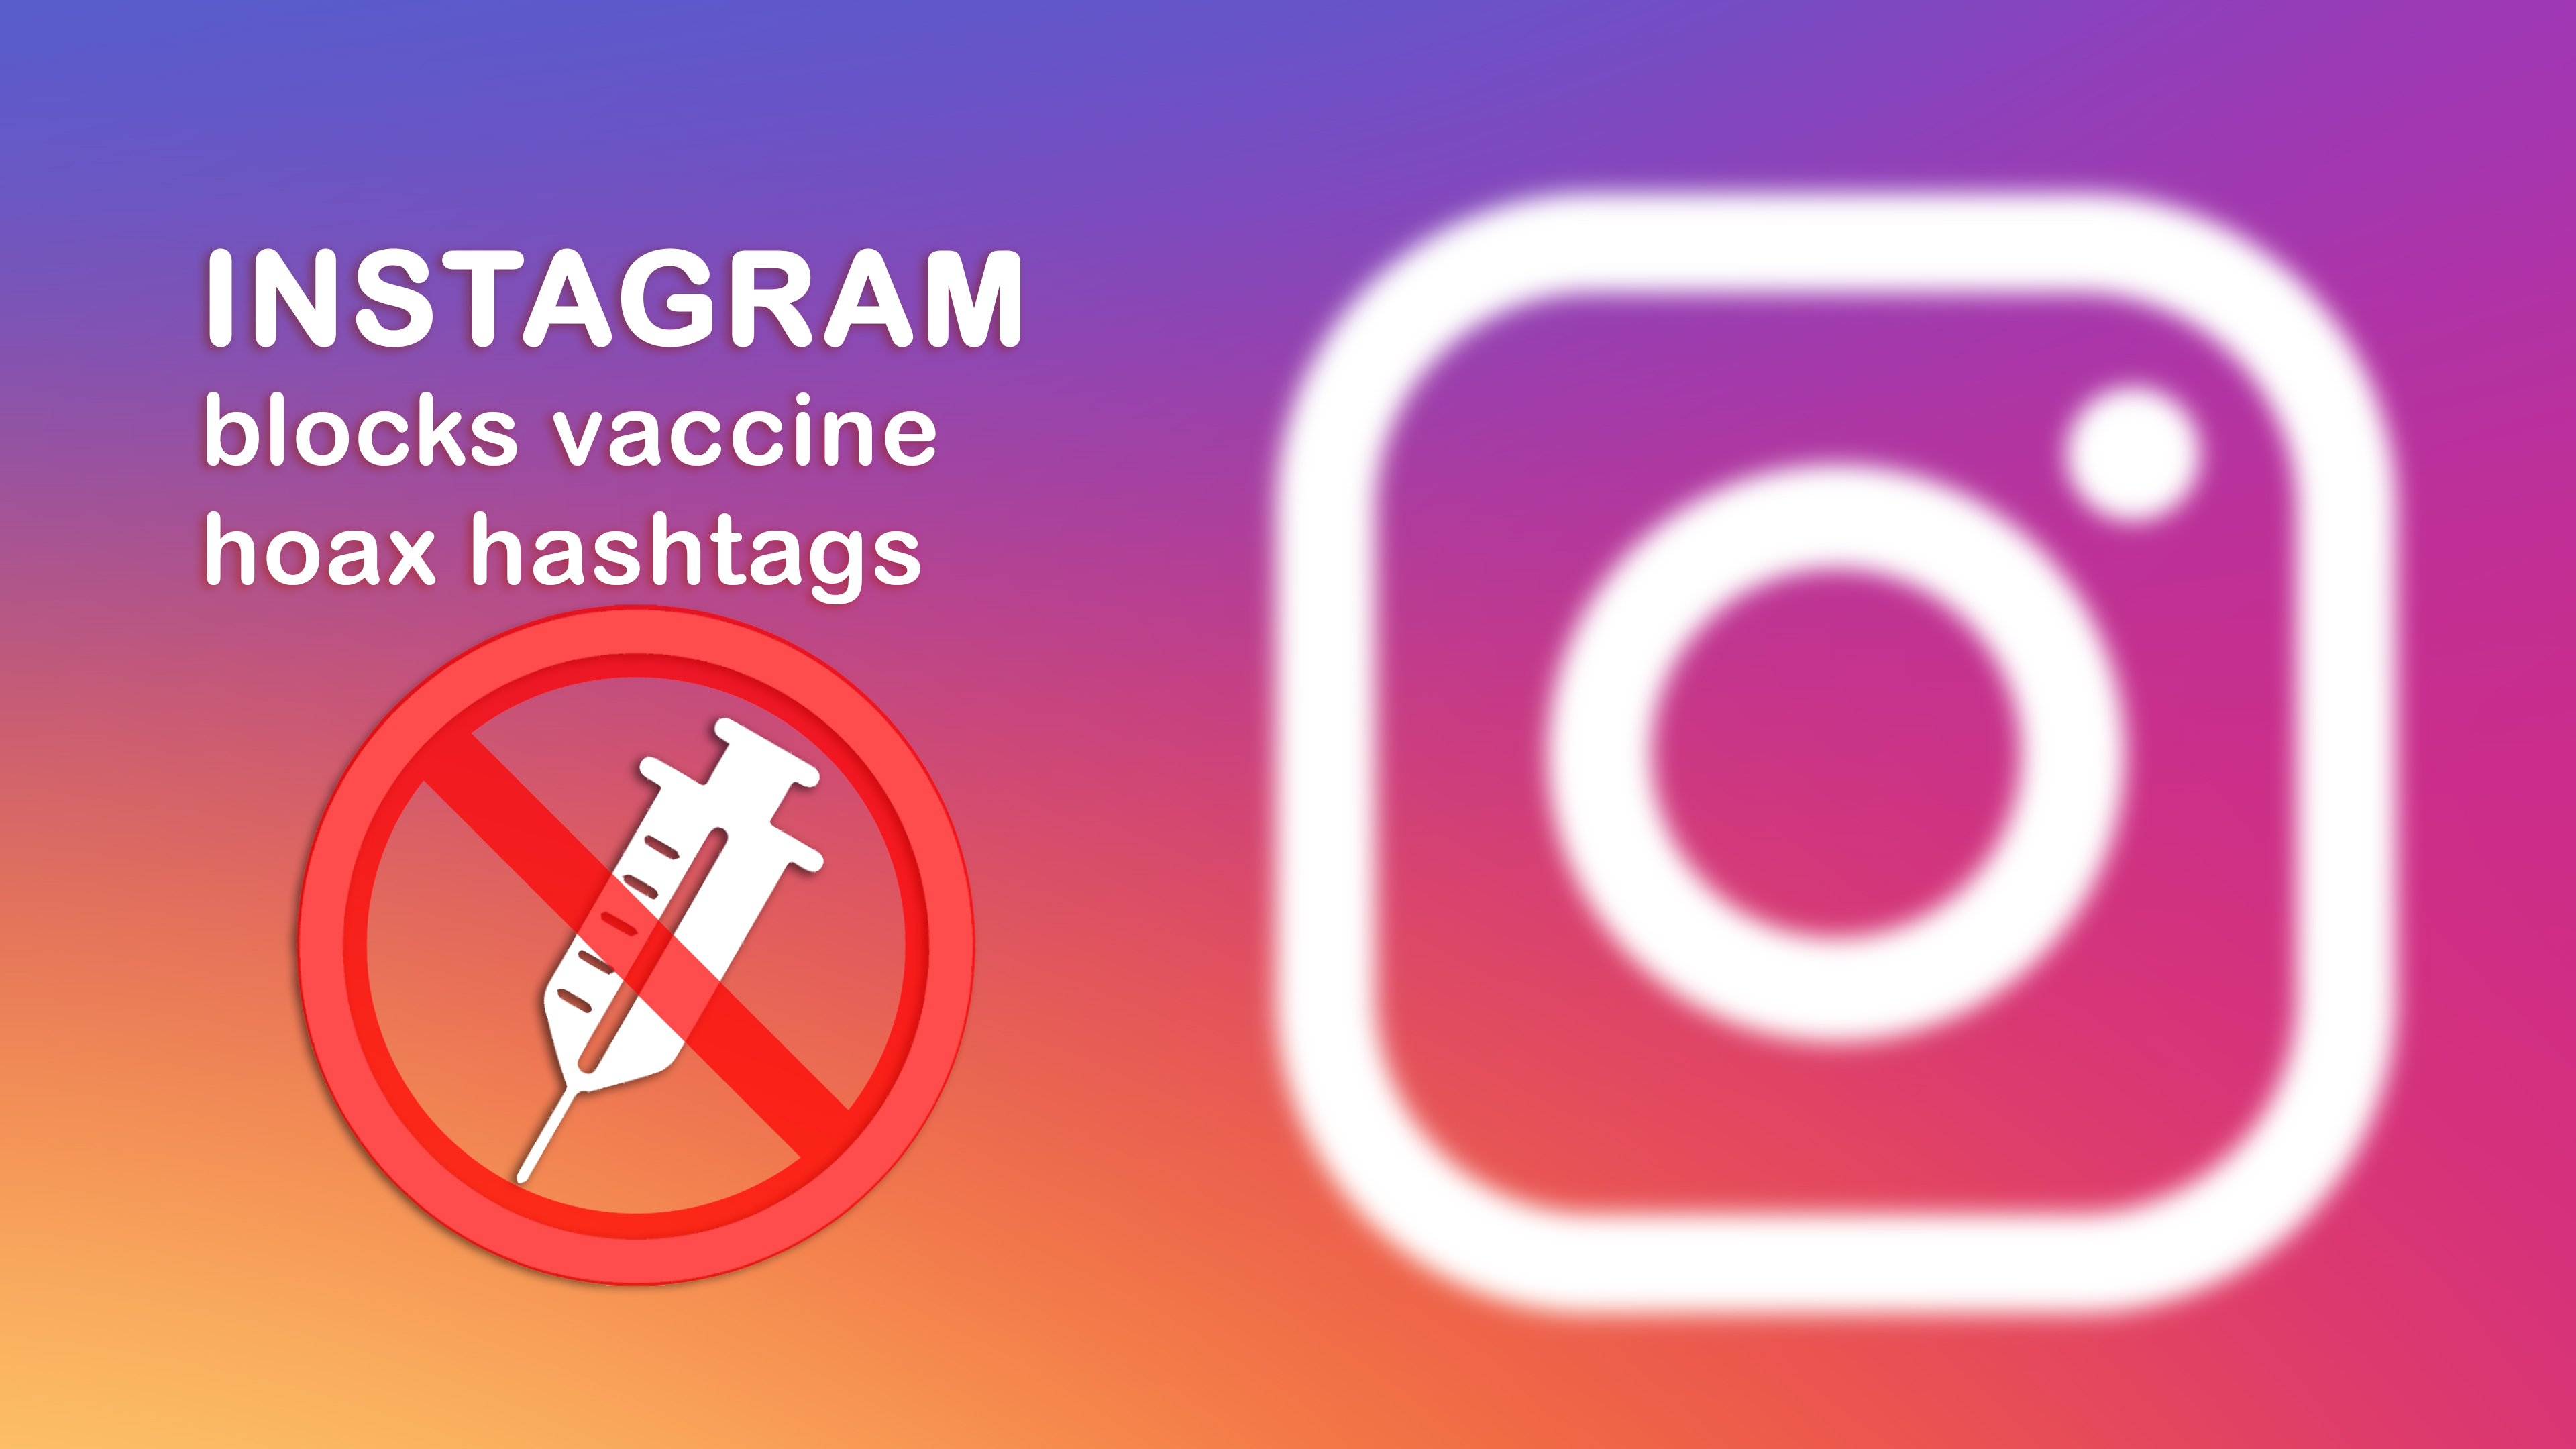 Vaccine Hoax Hashtags Blocked on Instagram